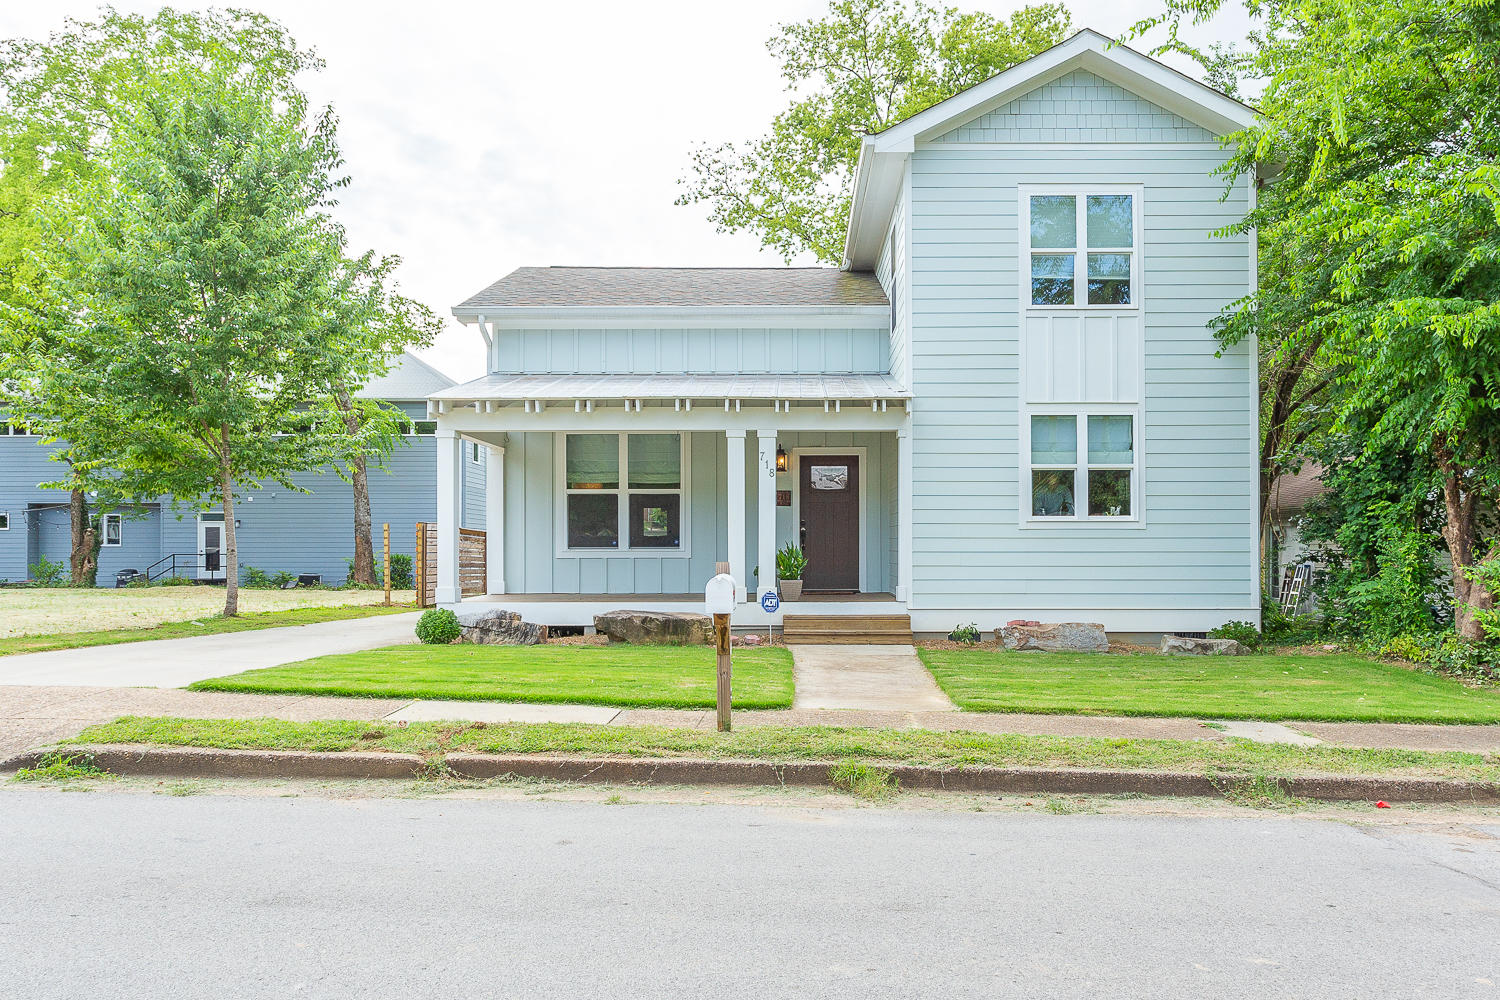 718 Spears Ave, Chattanooga, TN 37405